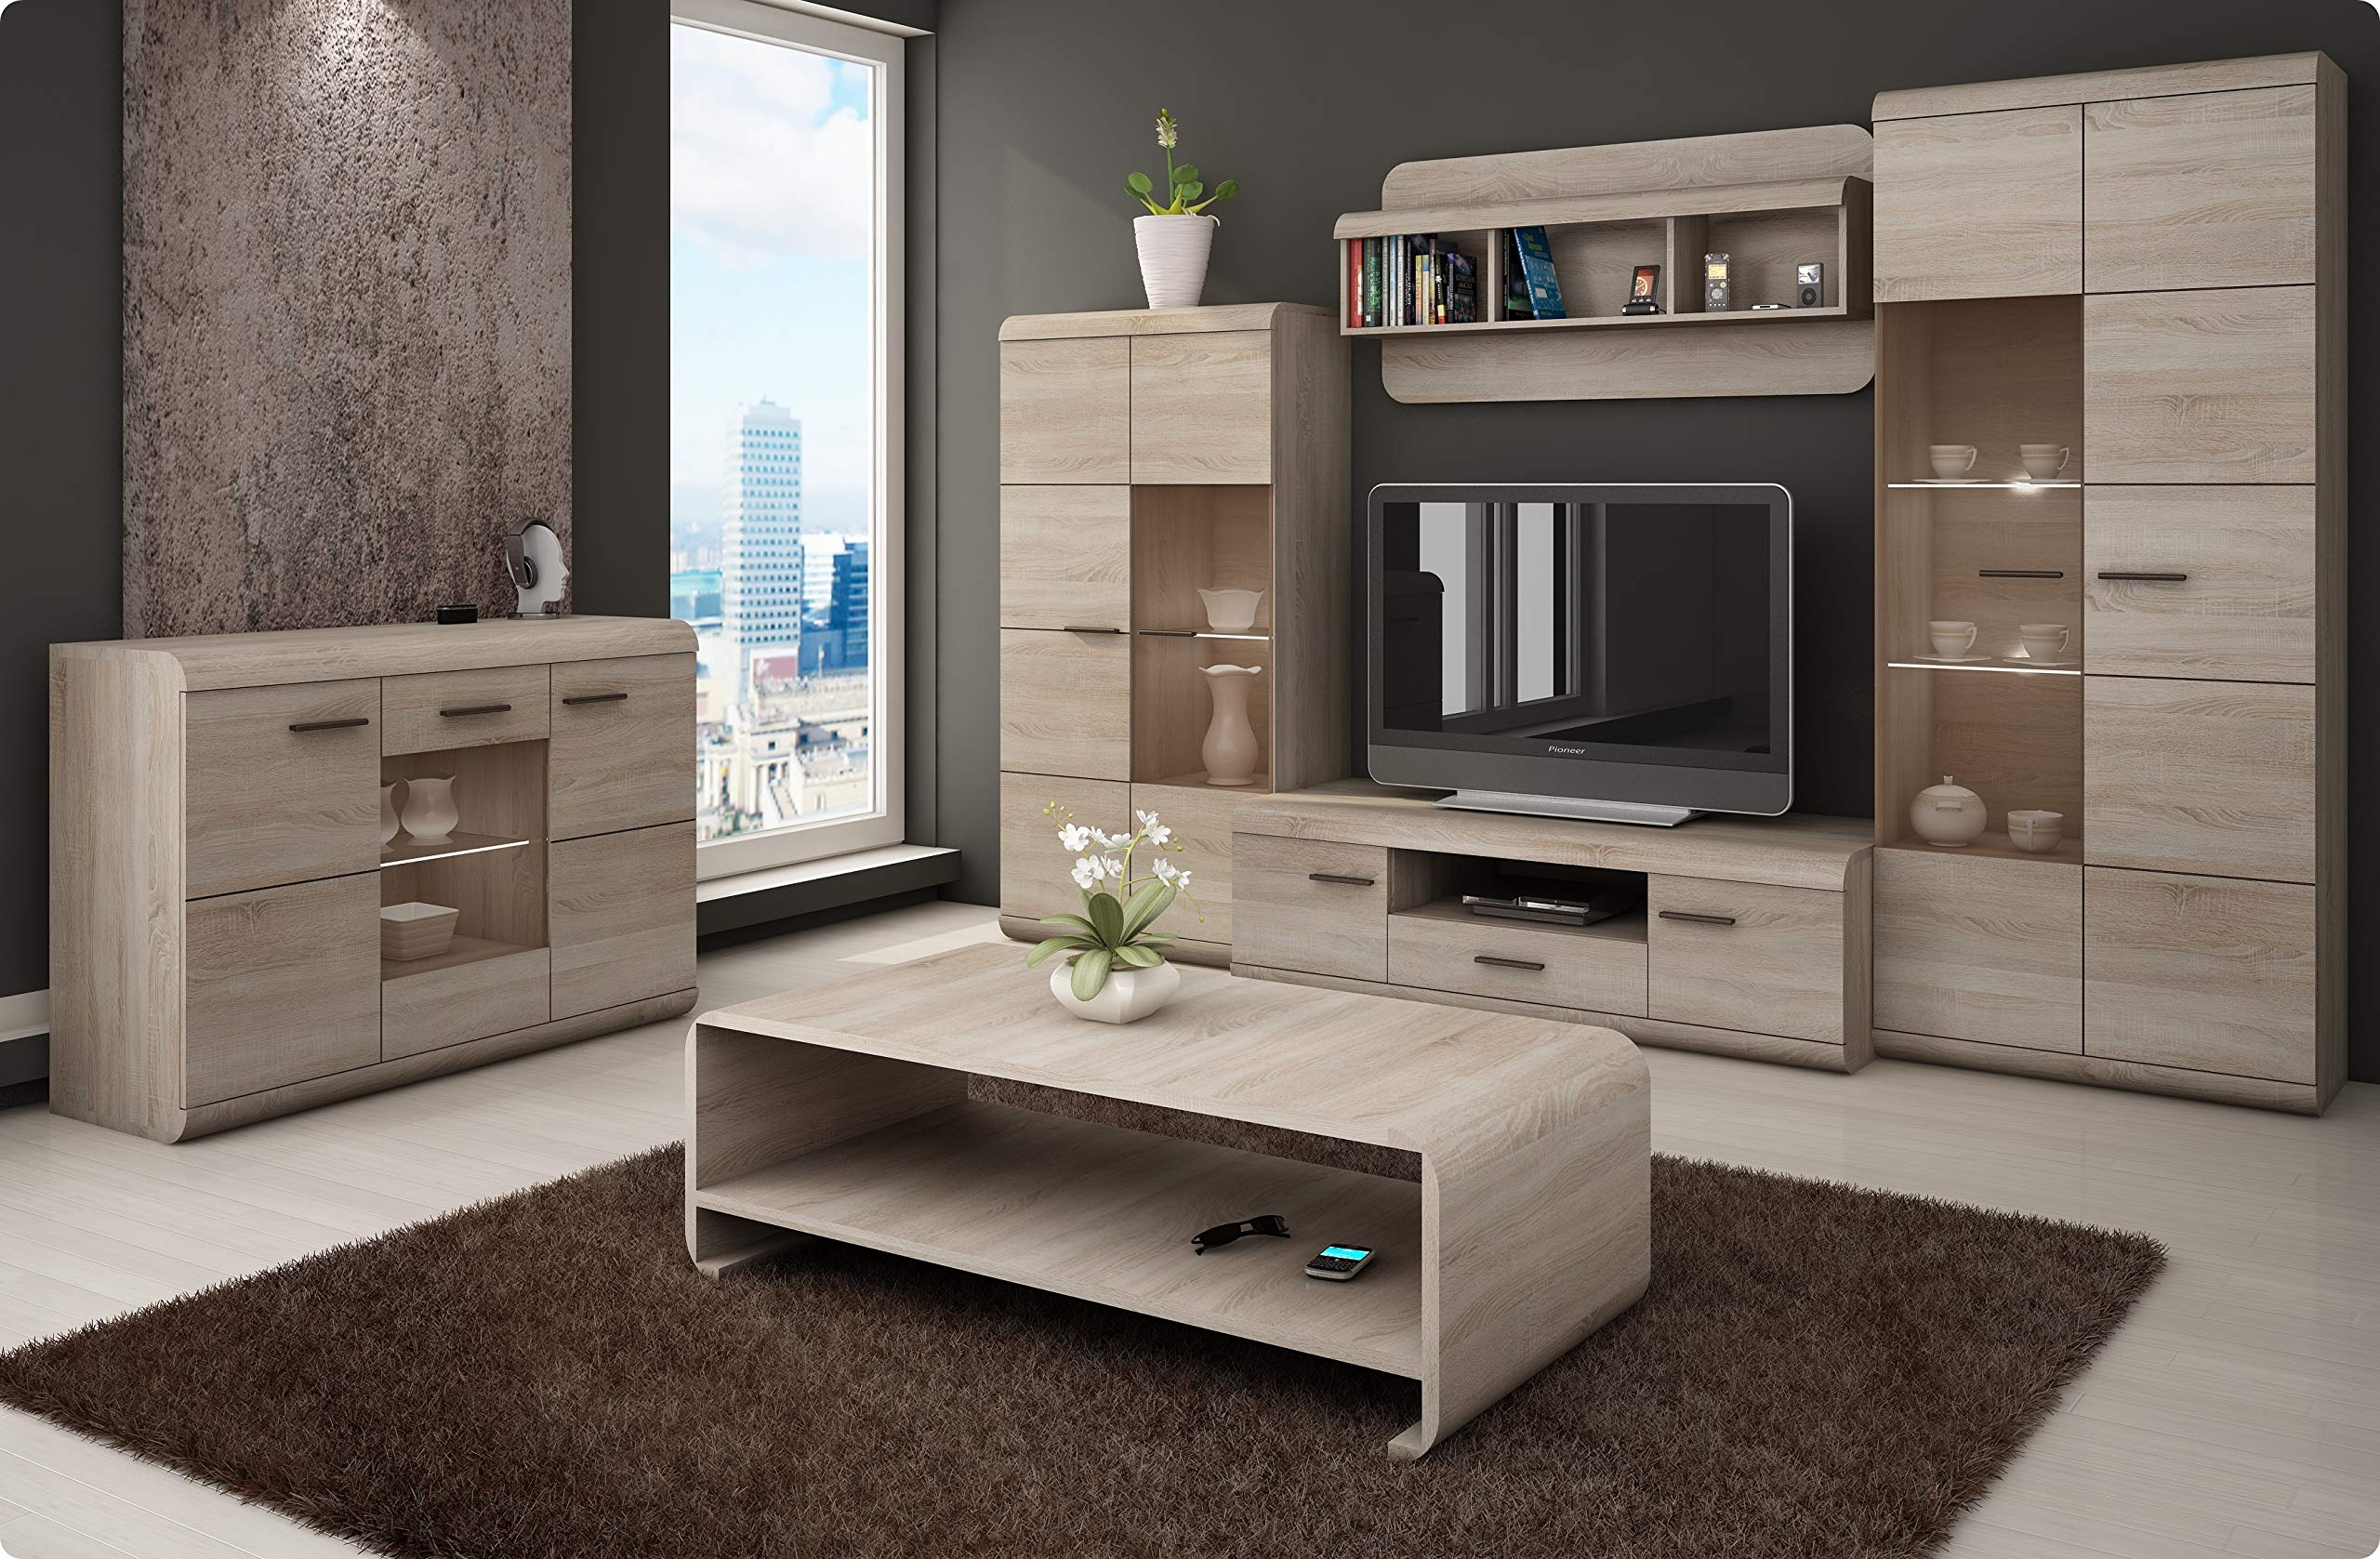 Living Room Furniture Set Lucano Tv Unit Buy Online In China At China Desertcart Com Productid 50535955